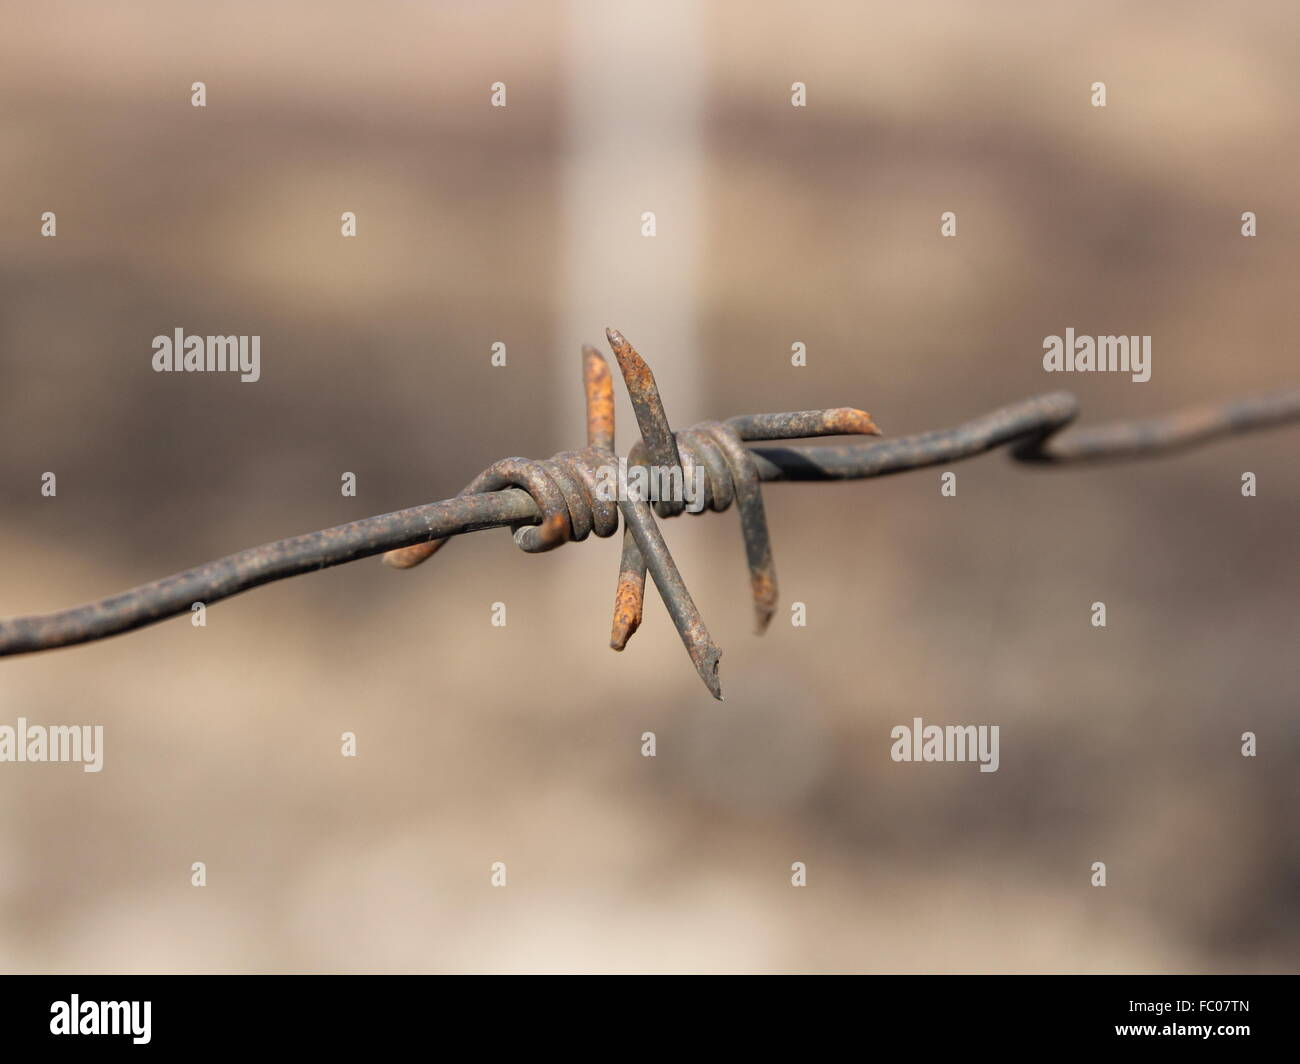 barbed wires - Stock Image